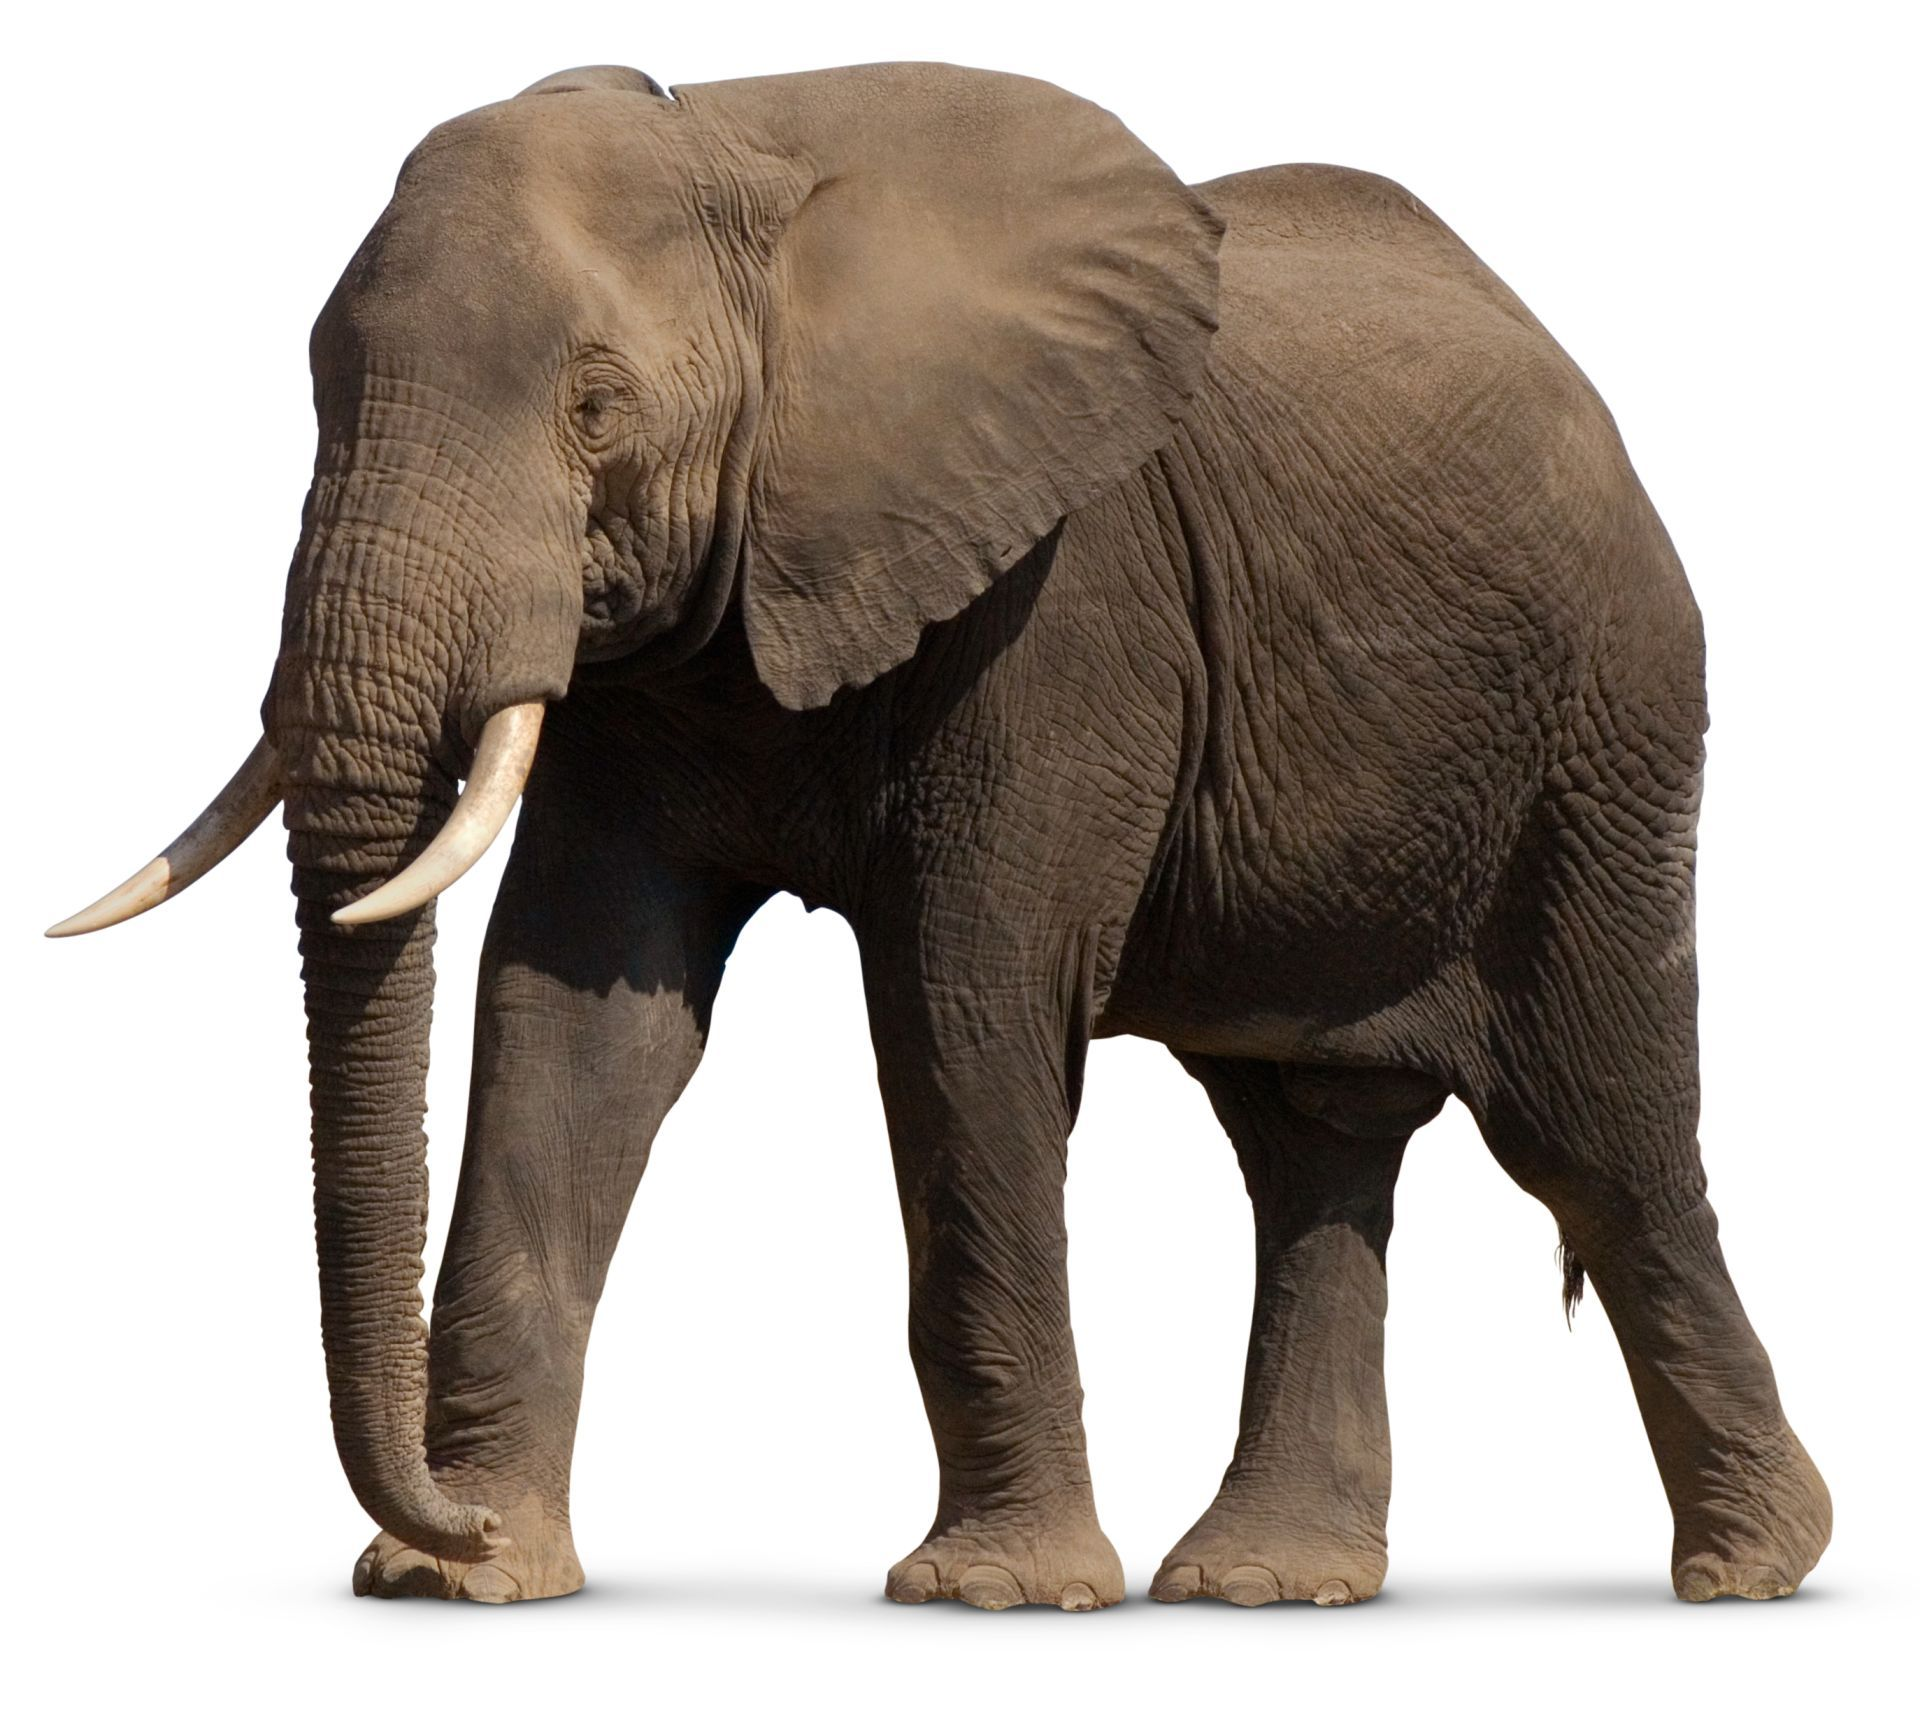 Image Result For African Elephant Elephant Pictures Elephant Facts Elephant